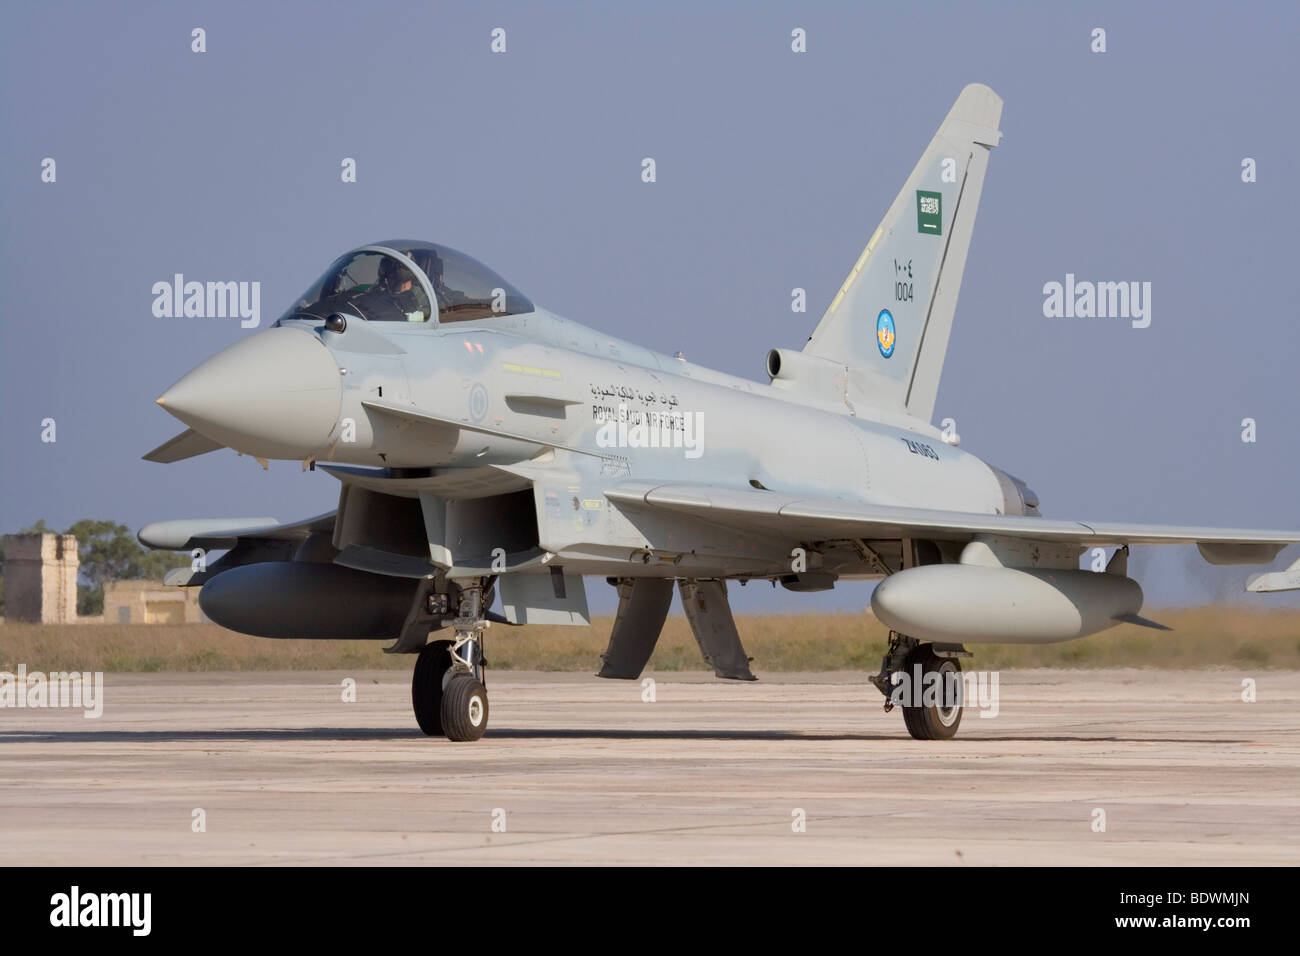 Modern military aviation. Royal Saudi Air Force Eurofighter Typhoon jet fighter aircraft - Stock Image